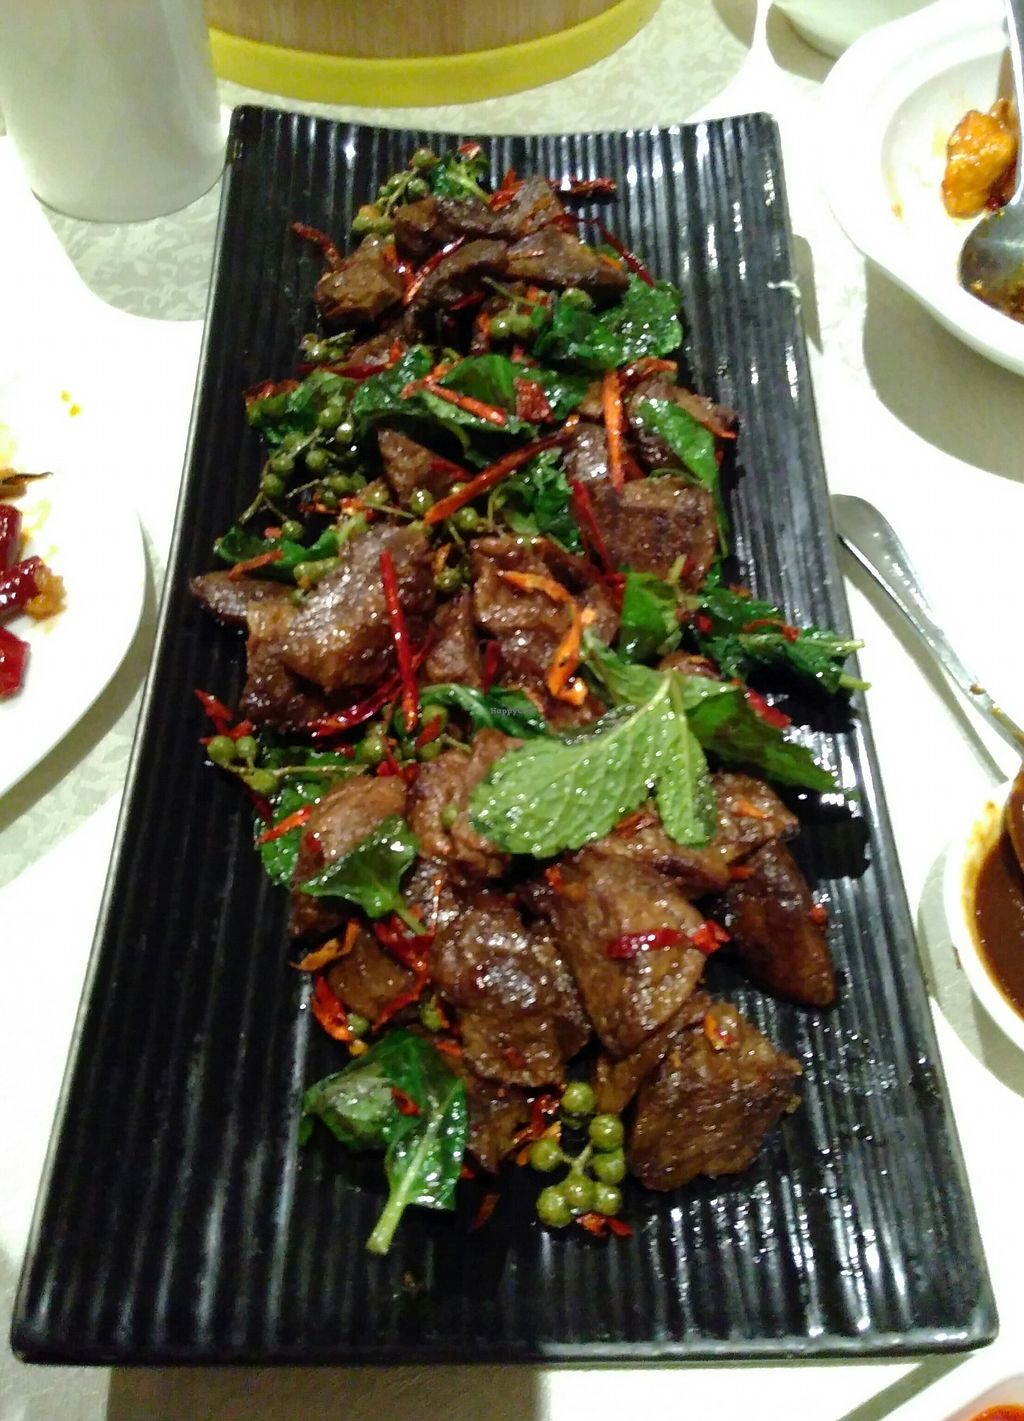 """Photo of Bowei Tang  by <a href=""""/members/profile/mcld"""">mcld</a> <br/>notbeef and szechuan pepper <br/> October 21, 2017  - <a href='/contact/abuse/image/18167/317285'>Report</a>"""